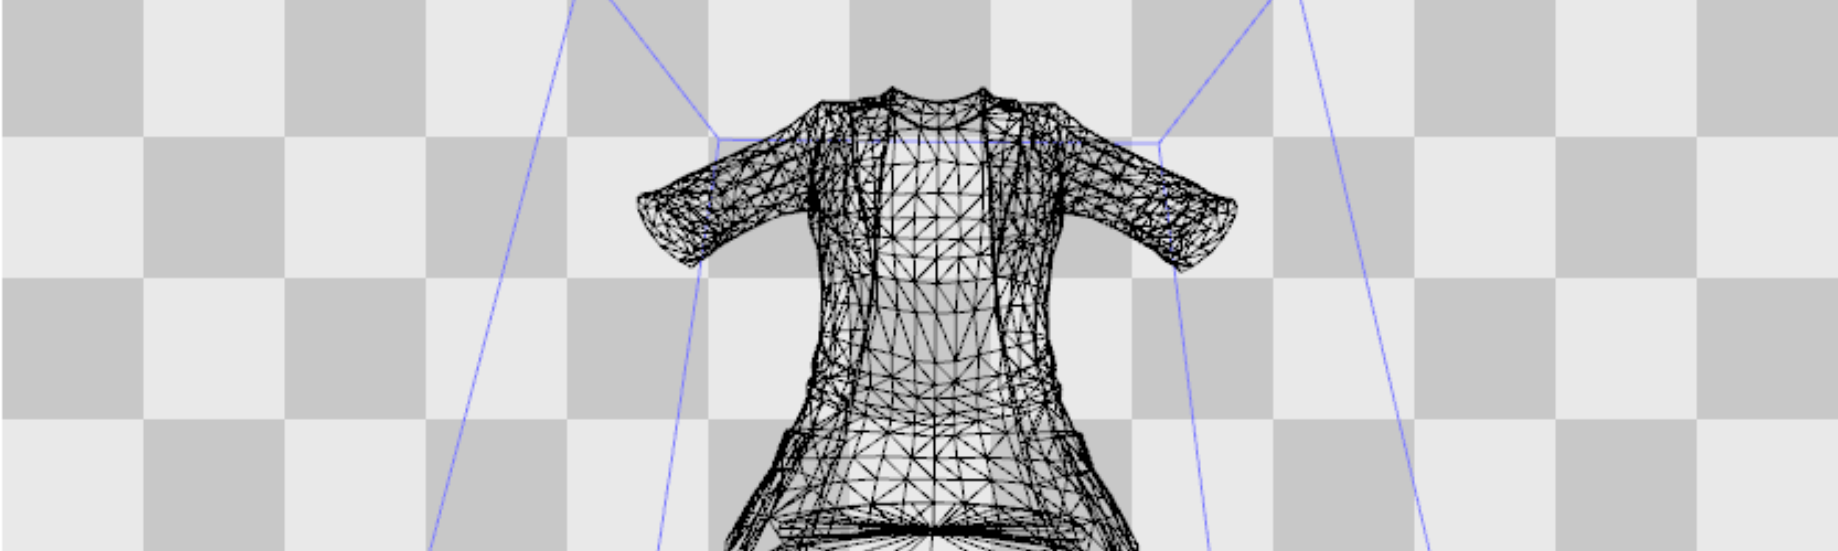 Unreal Engine 4 Rendering Part 2: Shaders and Vertex Data